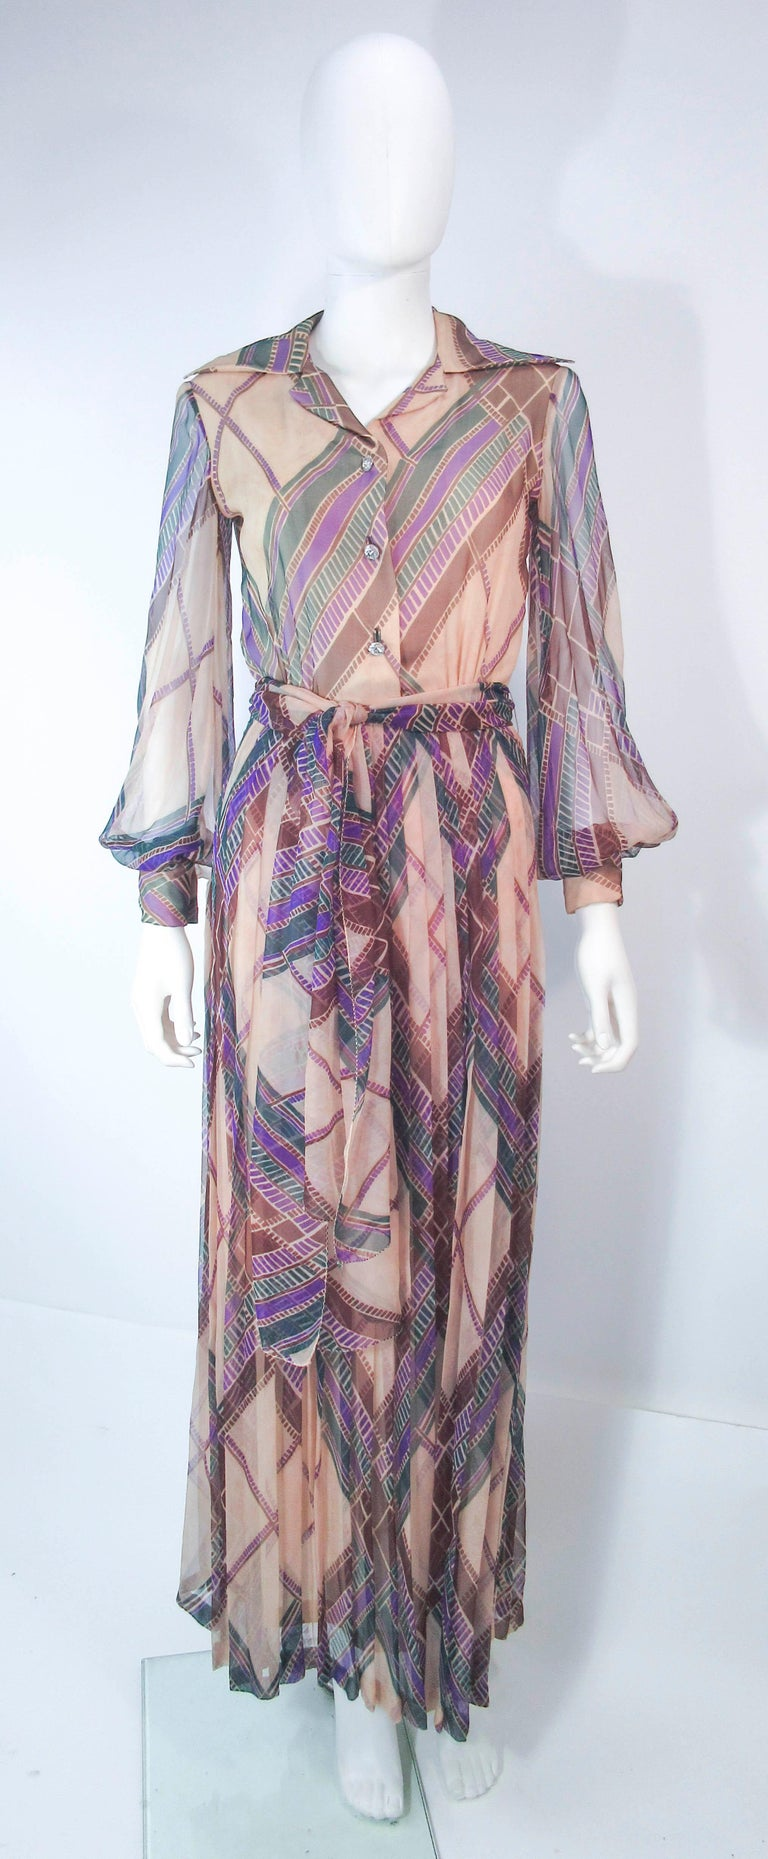 This Valentino design is composed of a beautiful abstract printed silk chiffon. Features a wonderful maxi style with center front rhinestone buttons and belt.  In excellent vintage condition, some wear (see photos).   **Please cross-reference